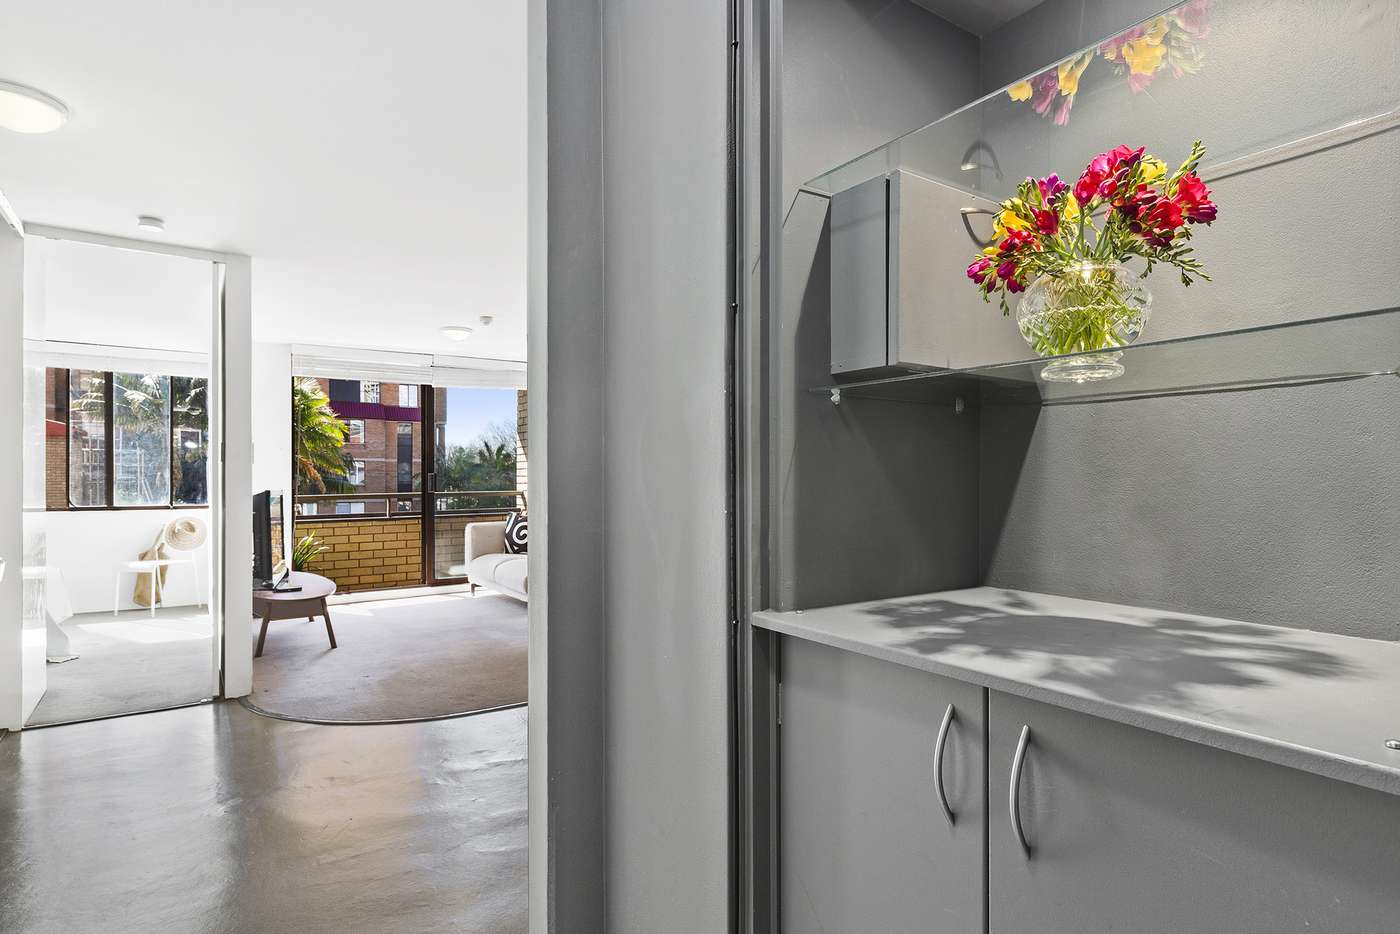 Sixth view of Homely apartment listing, 12/103 Victoria Street, Potts Point NSW 2011